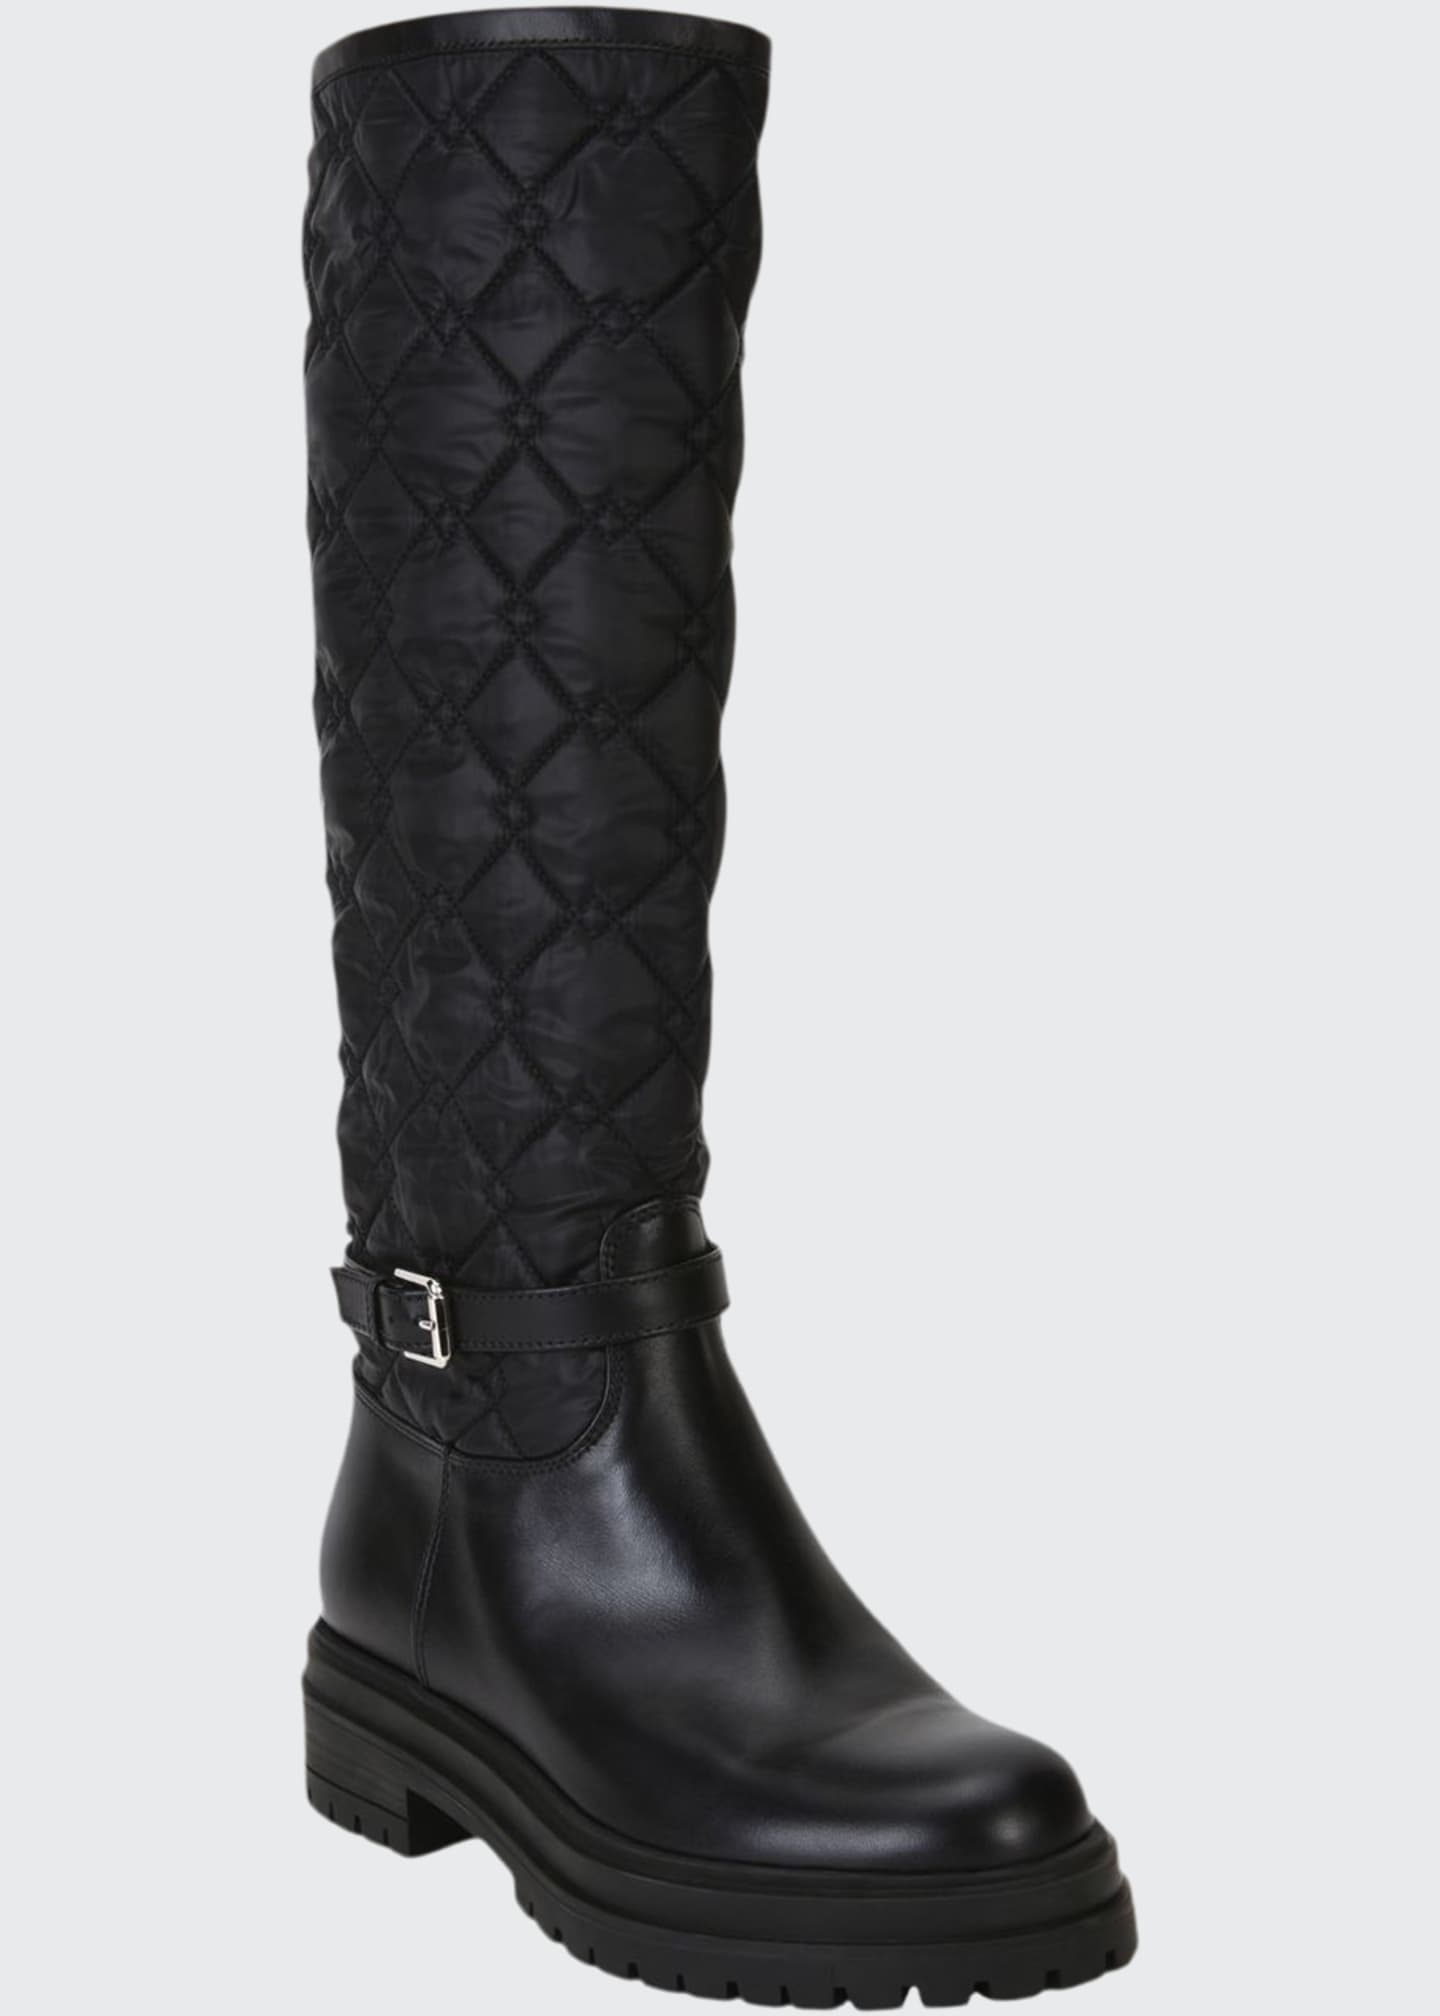 Gianvito Rossi Leather & Quilted Nylon Riding Boots